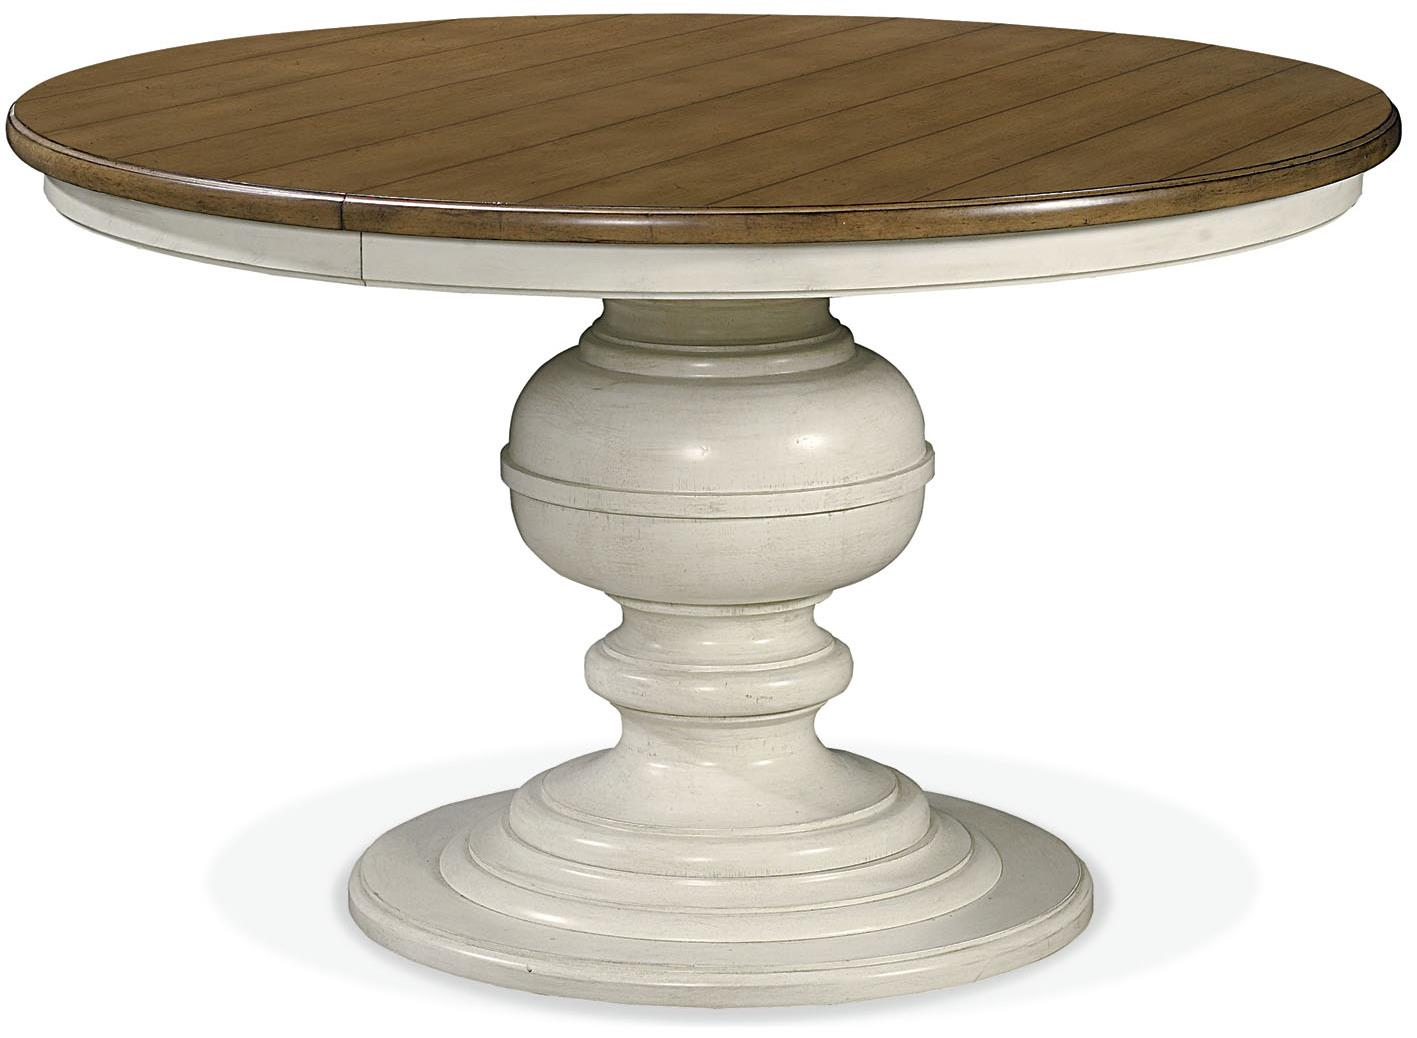 Summer Hill Round Pedestal Table by Universal at Baer's Furniture